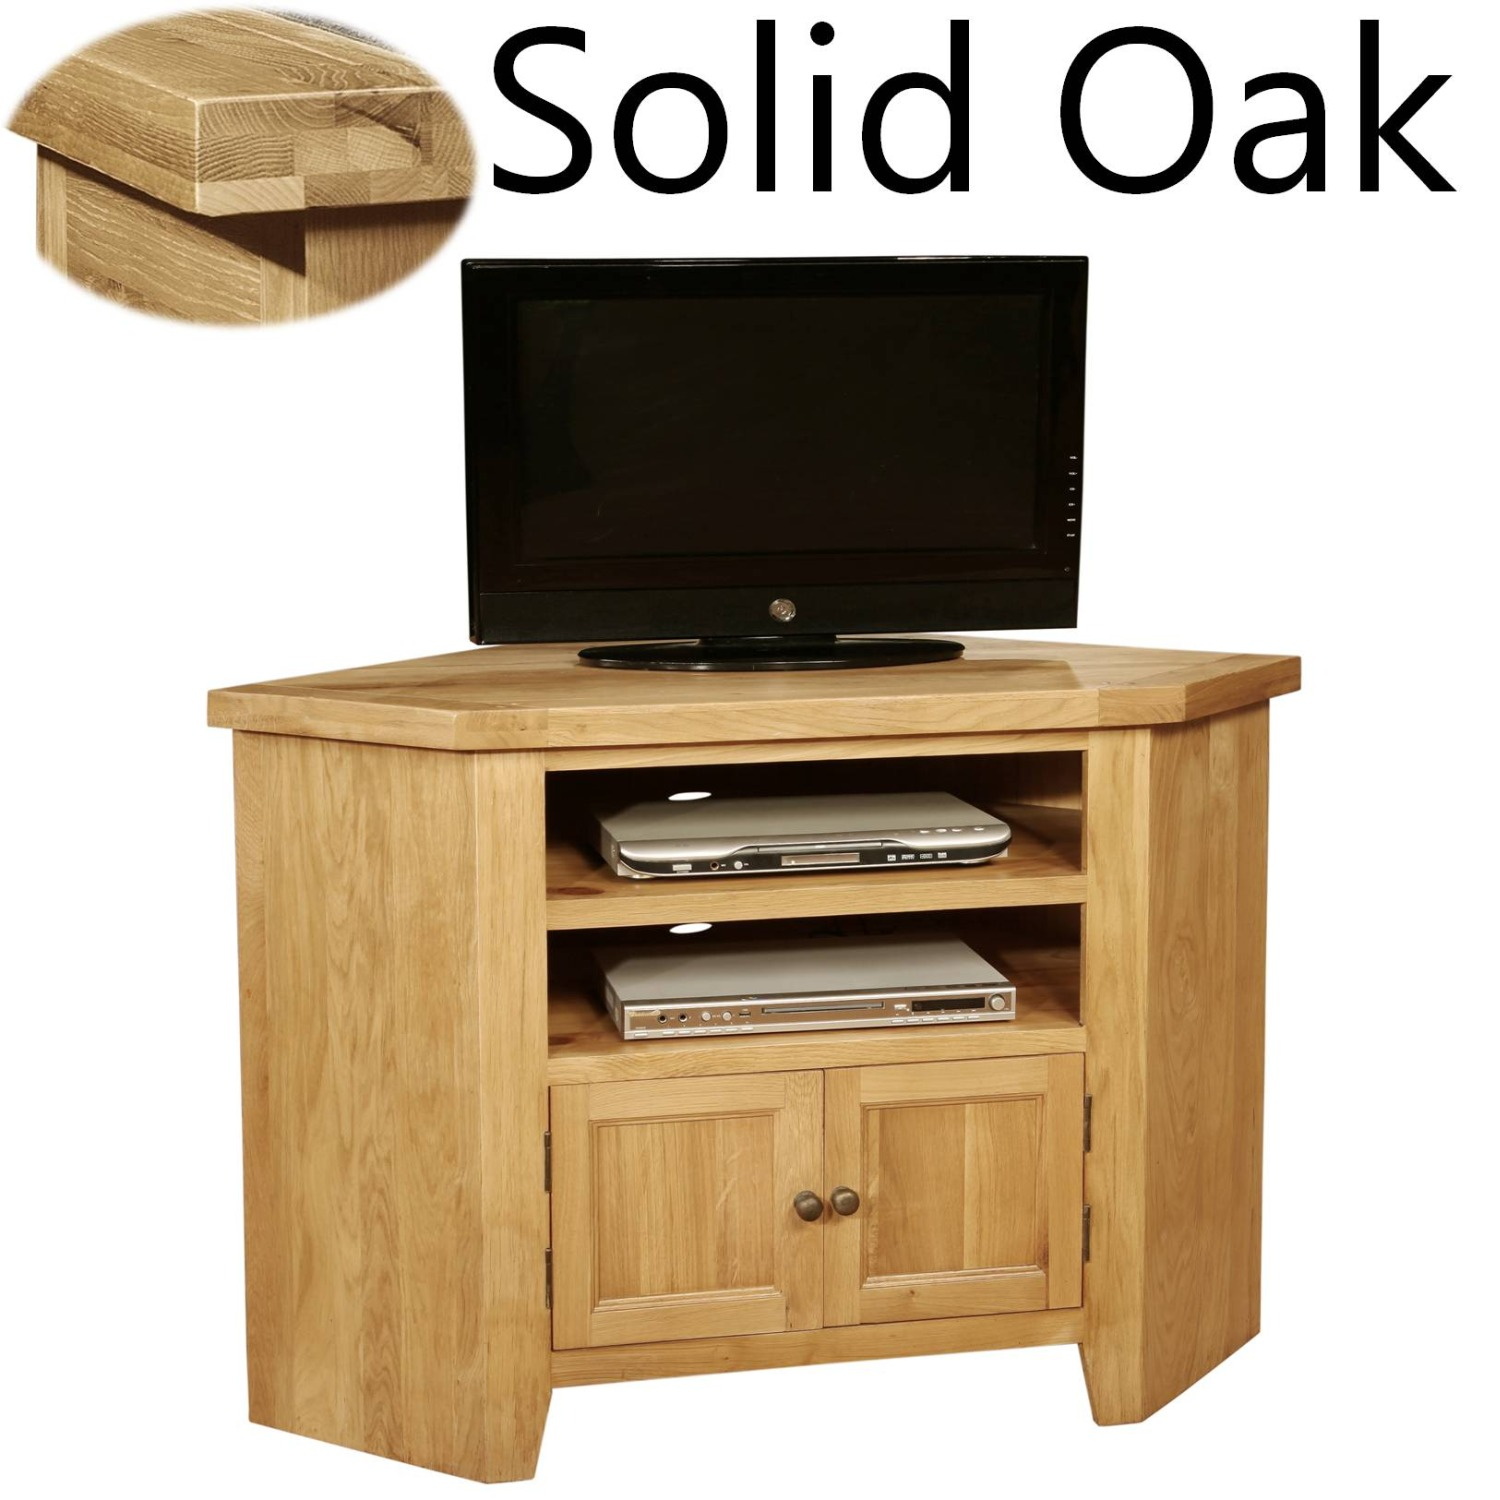 Panama Solid Oak Furniture Living Room Corner Television Cabinet Stand Unit